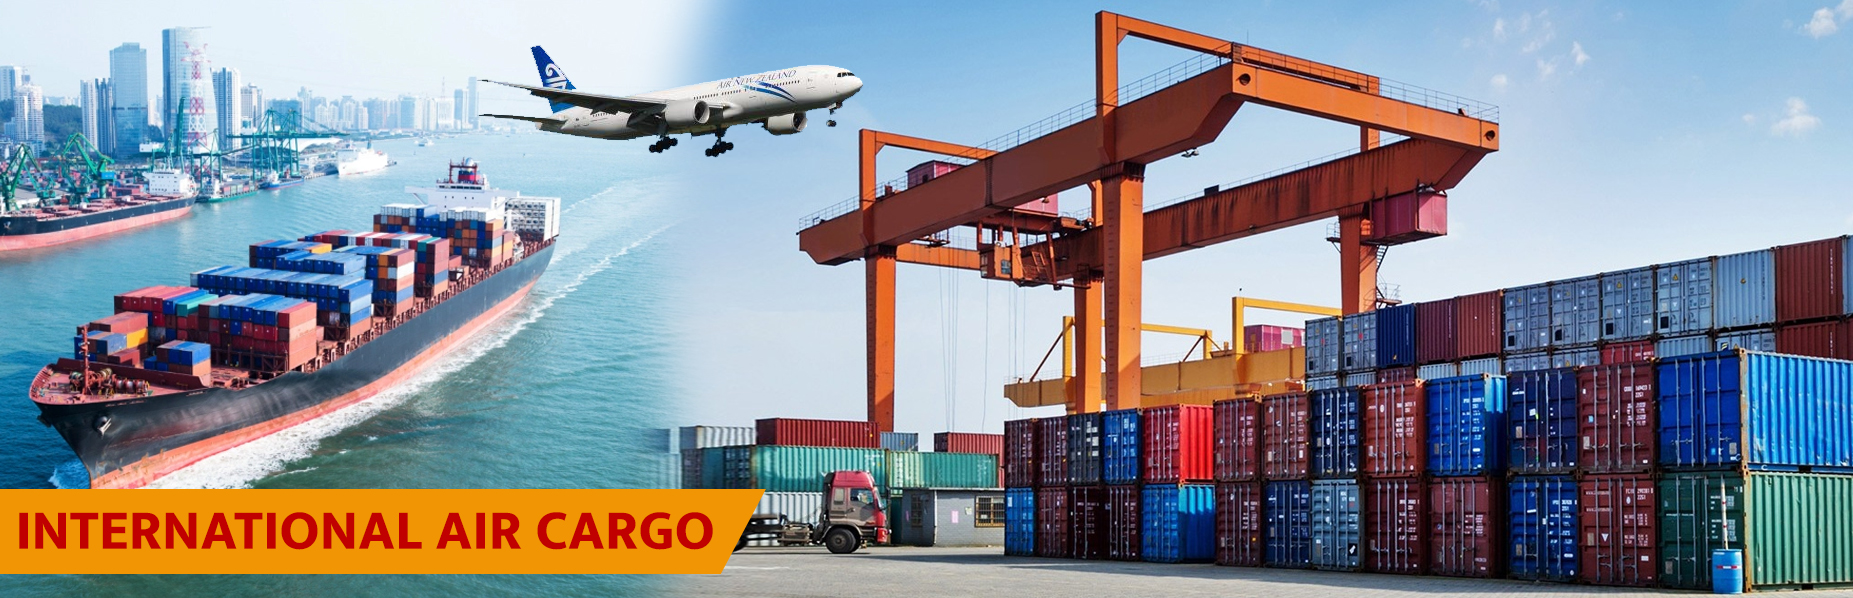 international courier cargo services agents air freight. Black Bedroom Furniture Sets. Home Design Ideas